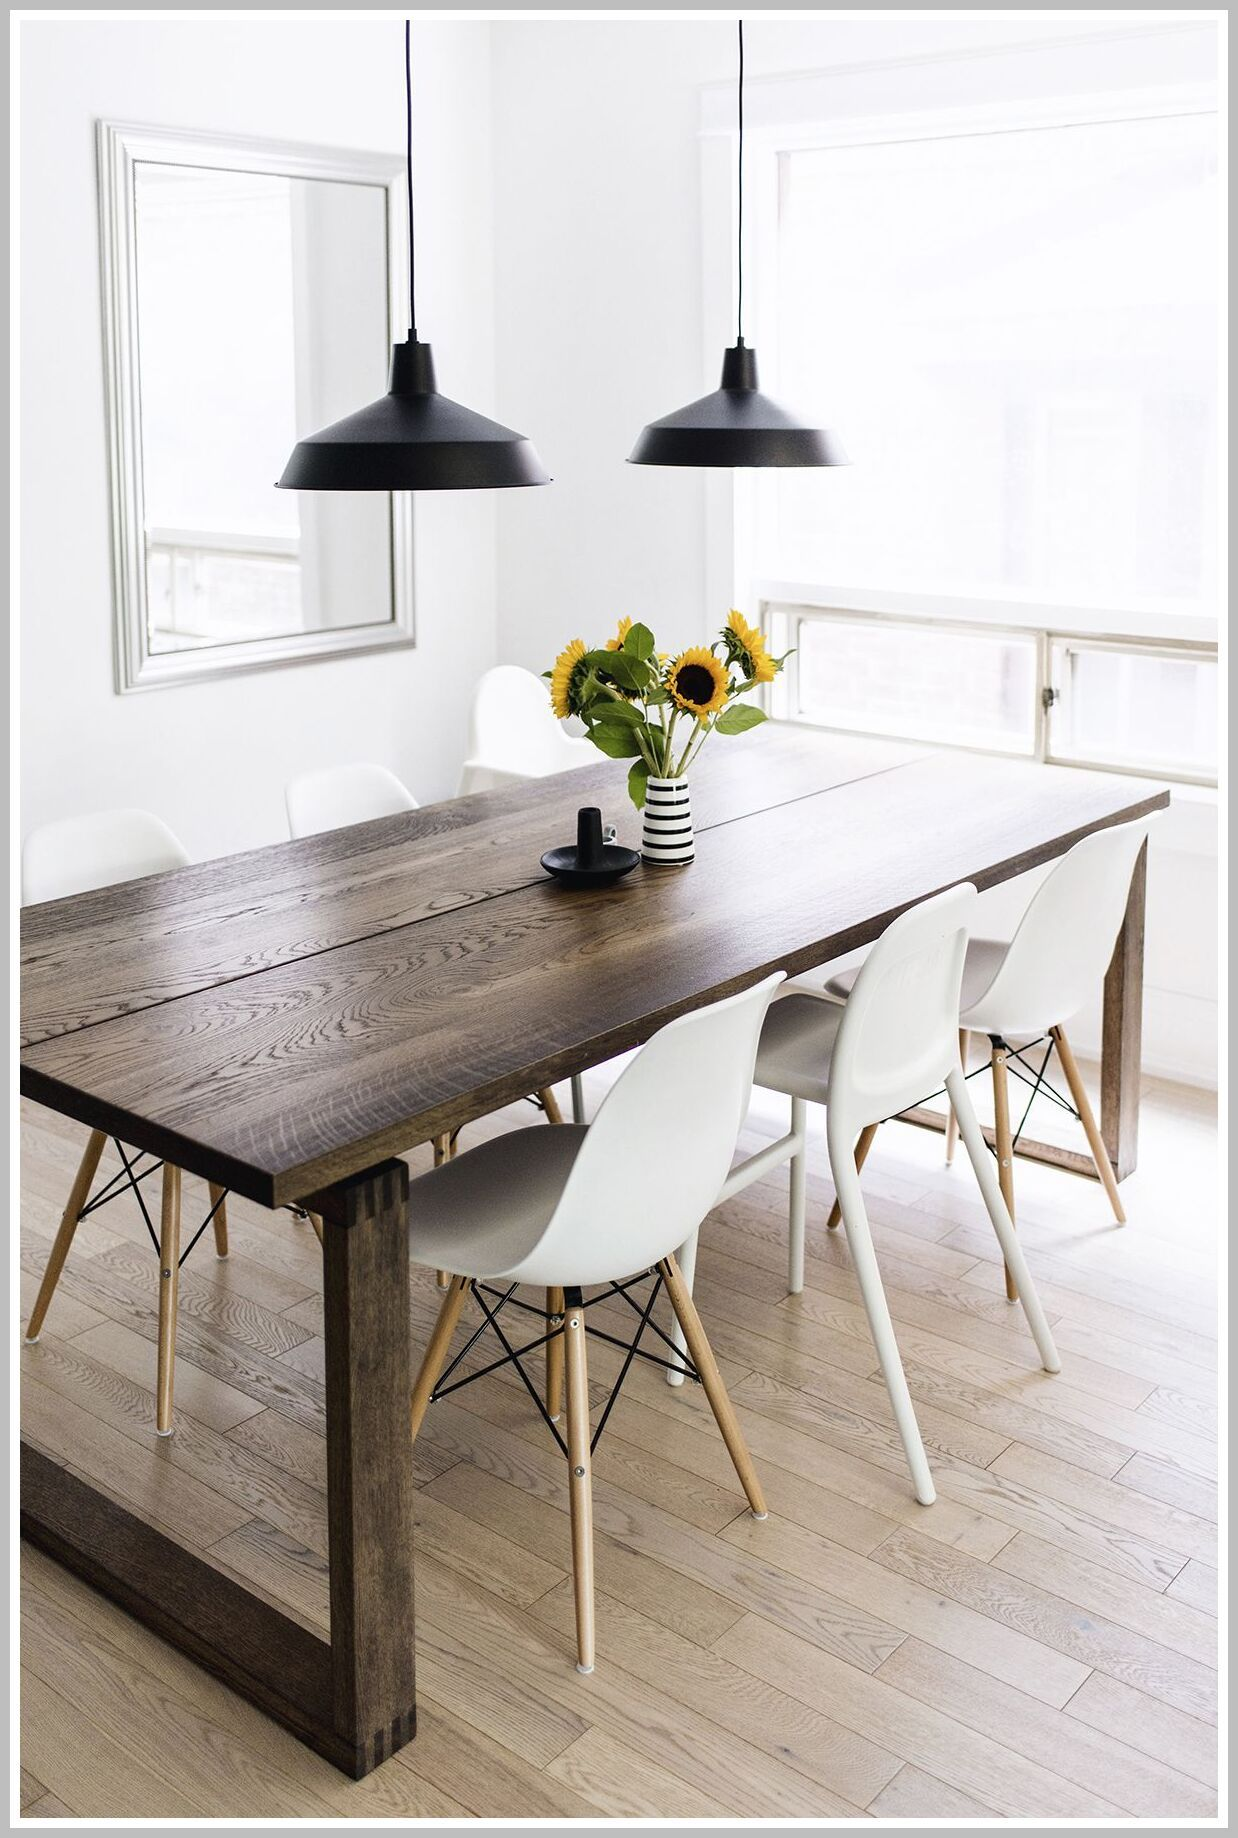 51 Reference Of Scandinavian Style Dining Table And Chairs In 2020 Scandinavian Dining Room Scandinavian Dining Table Dining Room Furniture Design